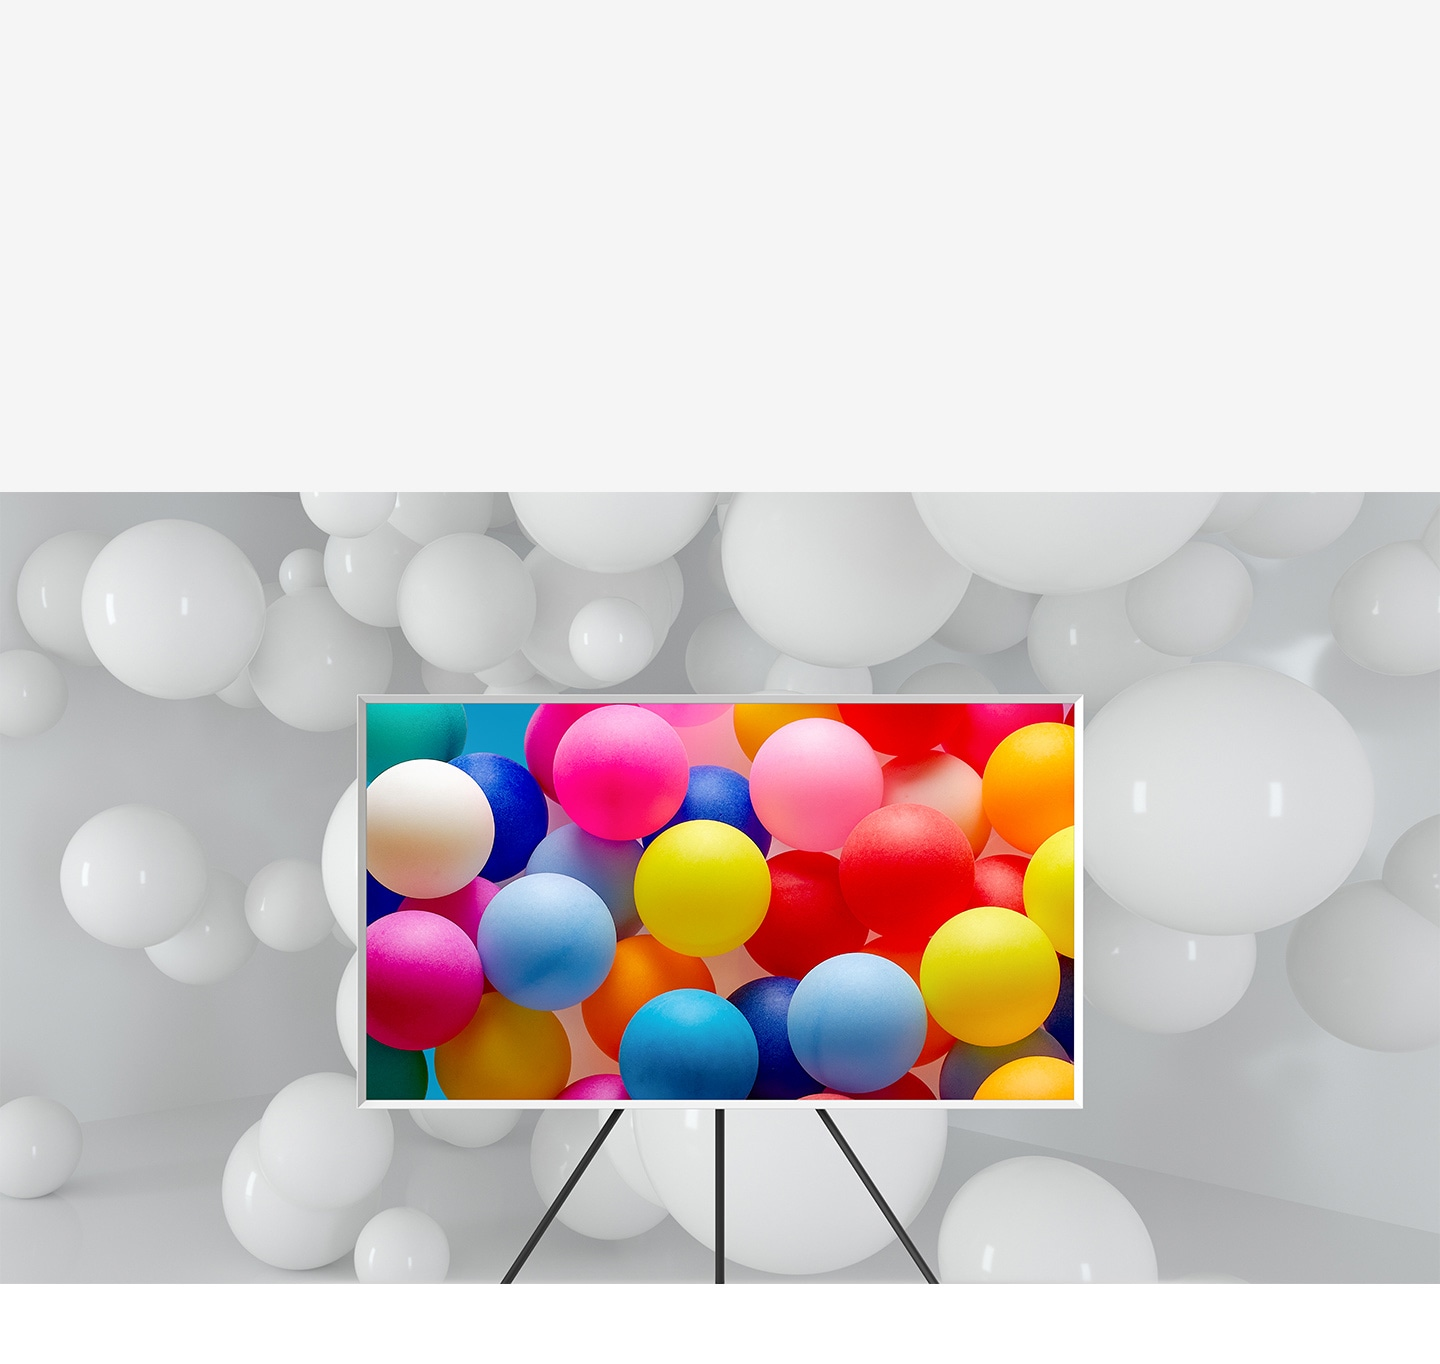 The Frame which is on Studio Stand is in a room full of white balloons. Only the balloons on the screen are visible in various vivid colors.